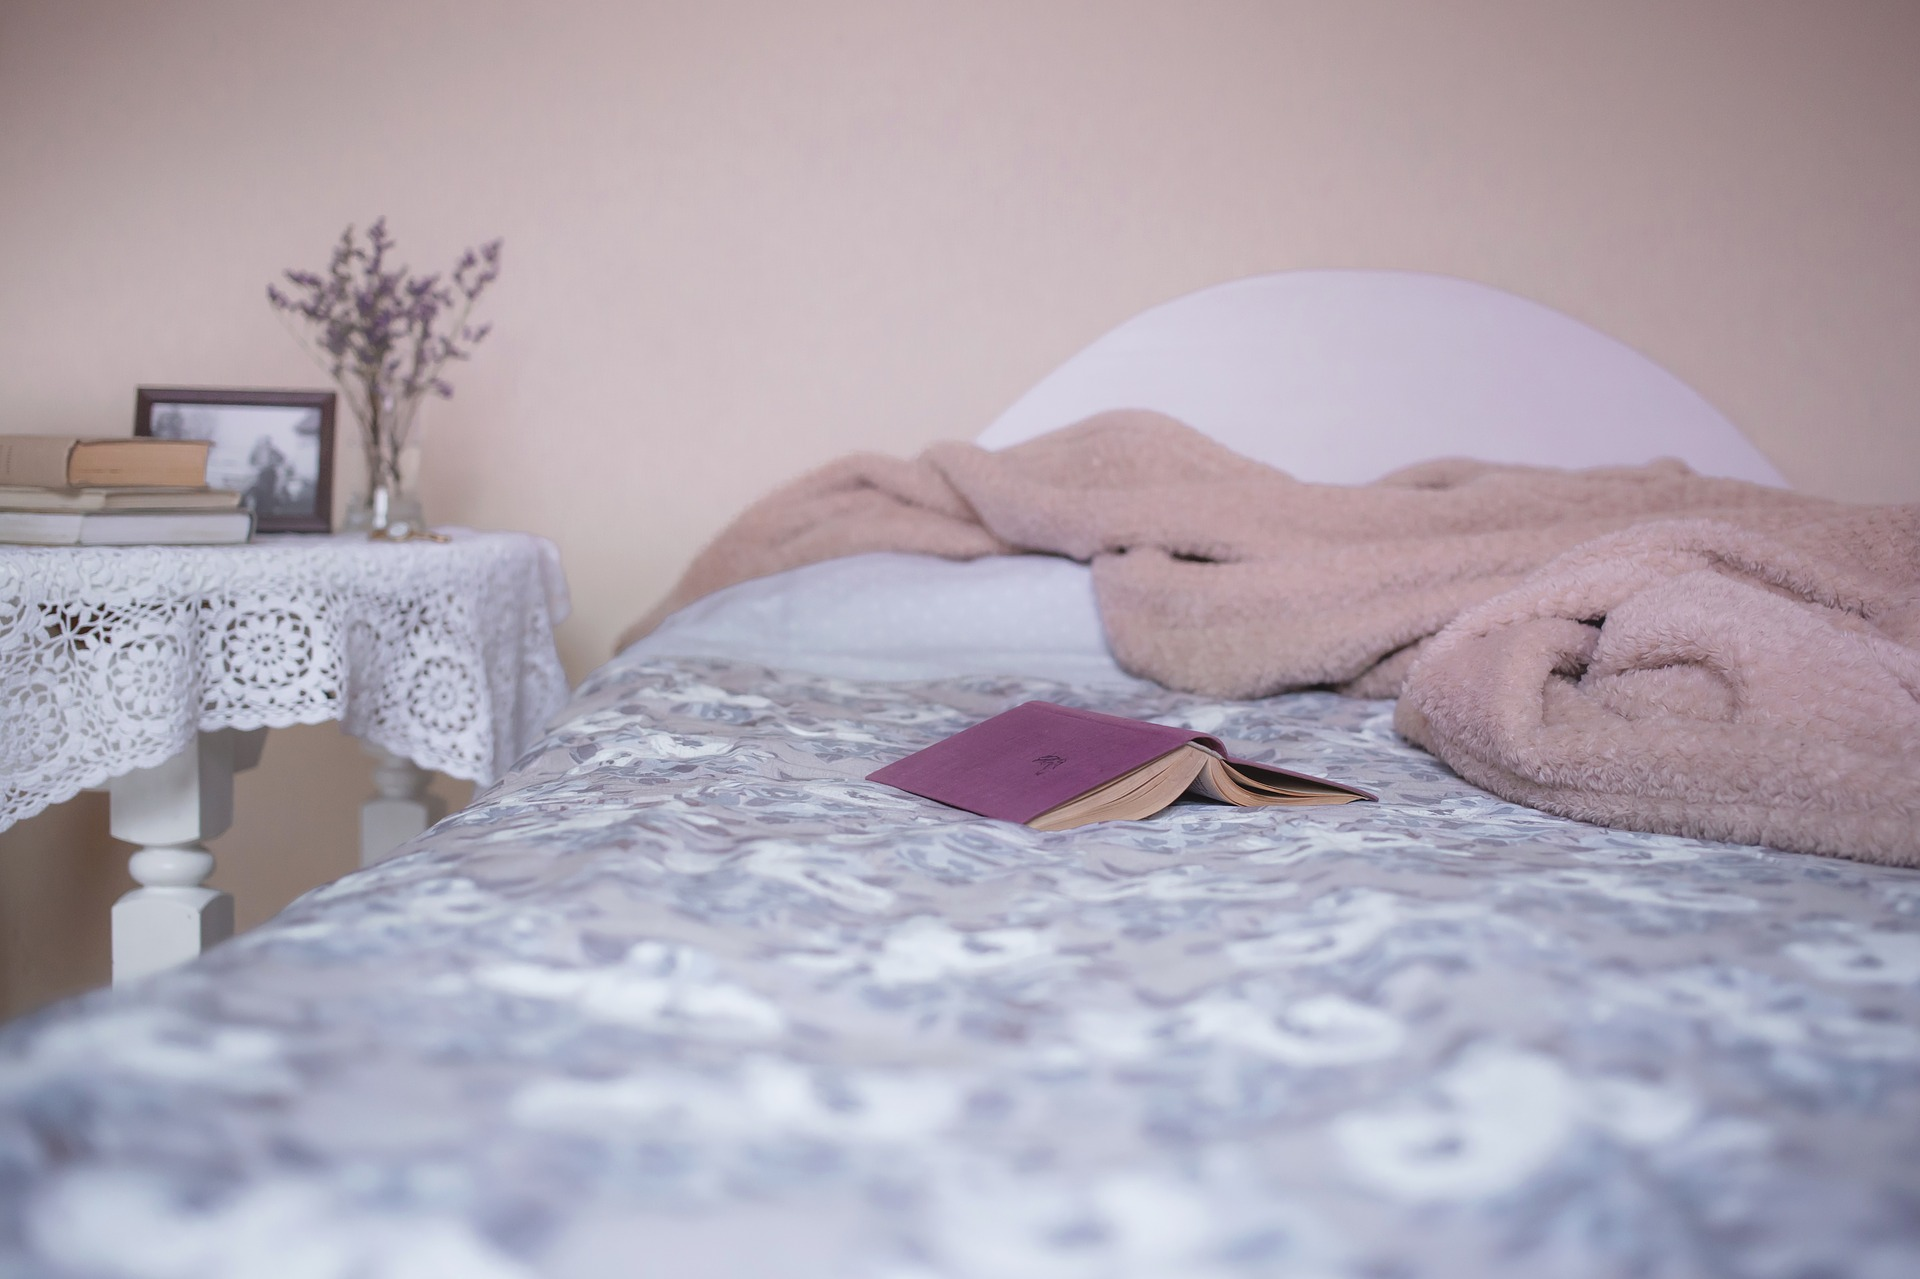 soft furnishings on bed